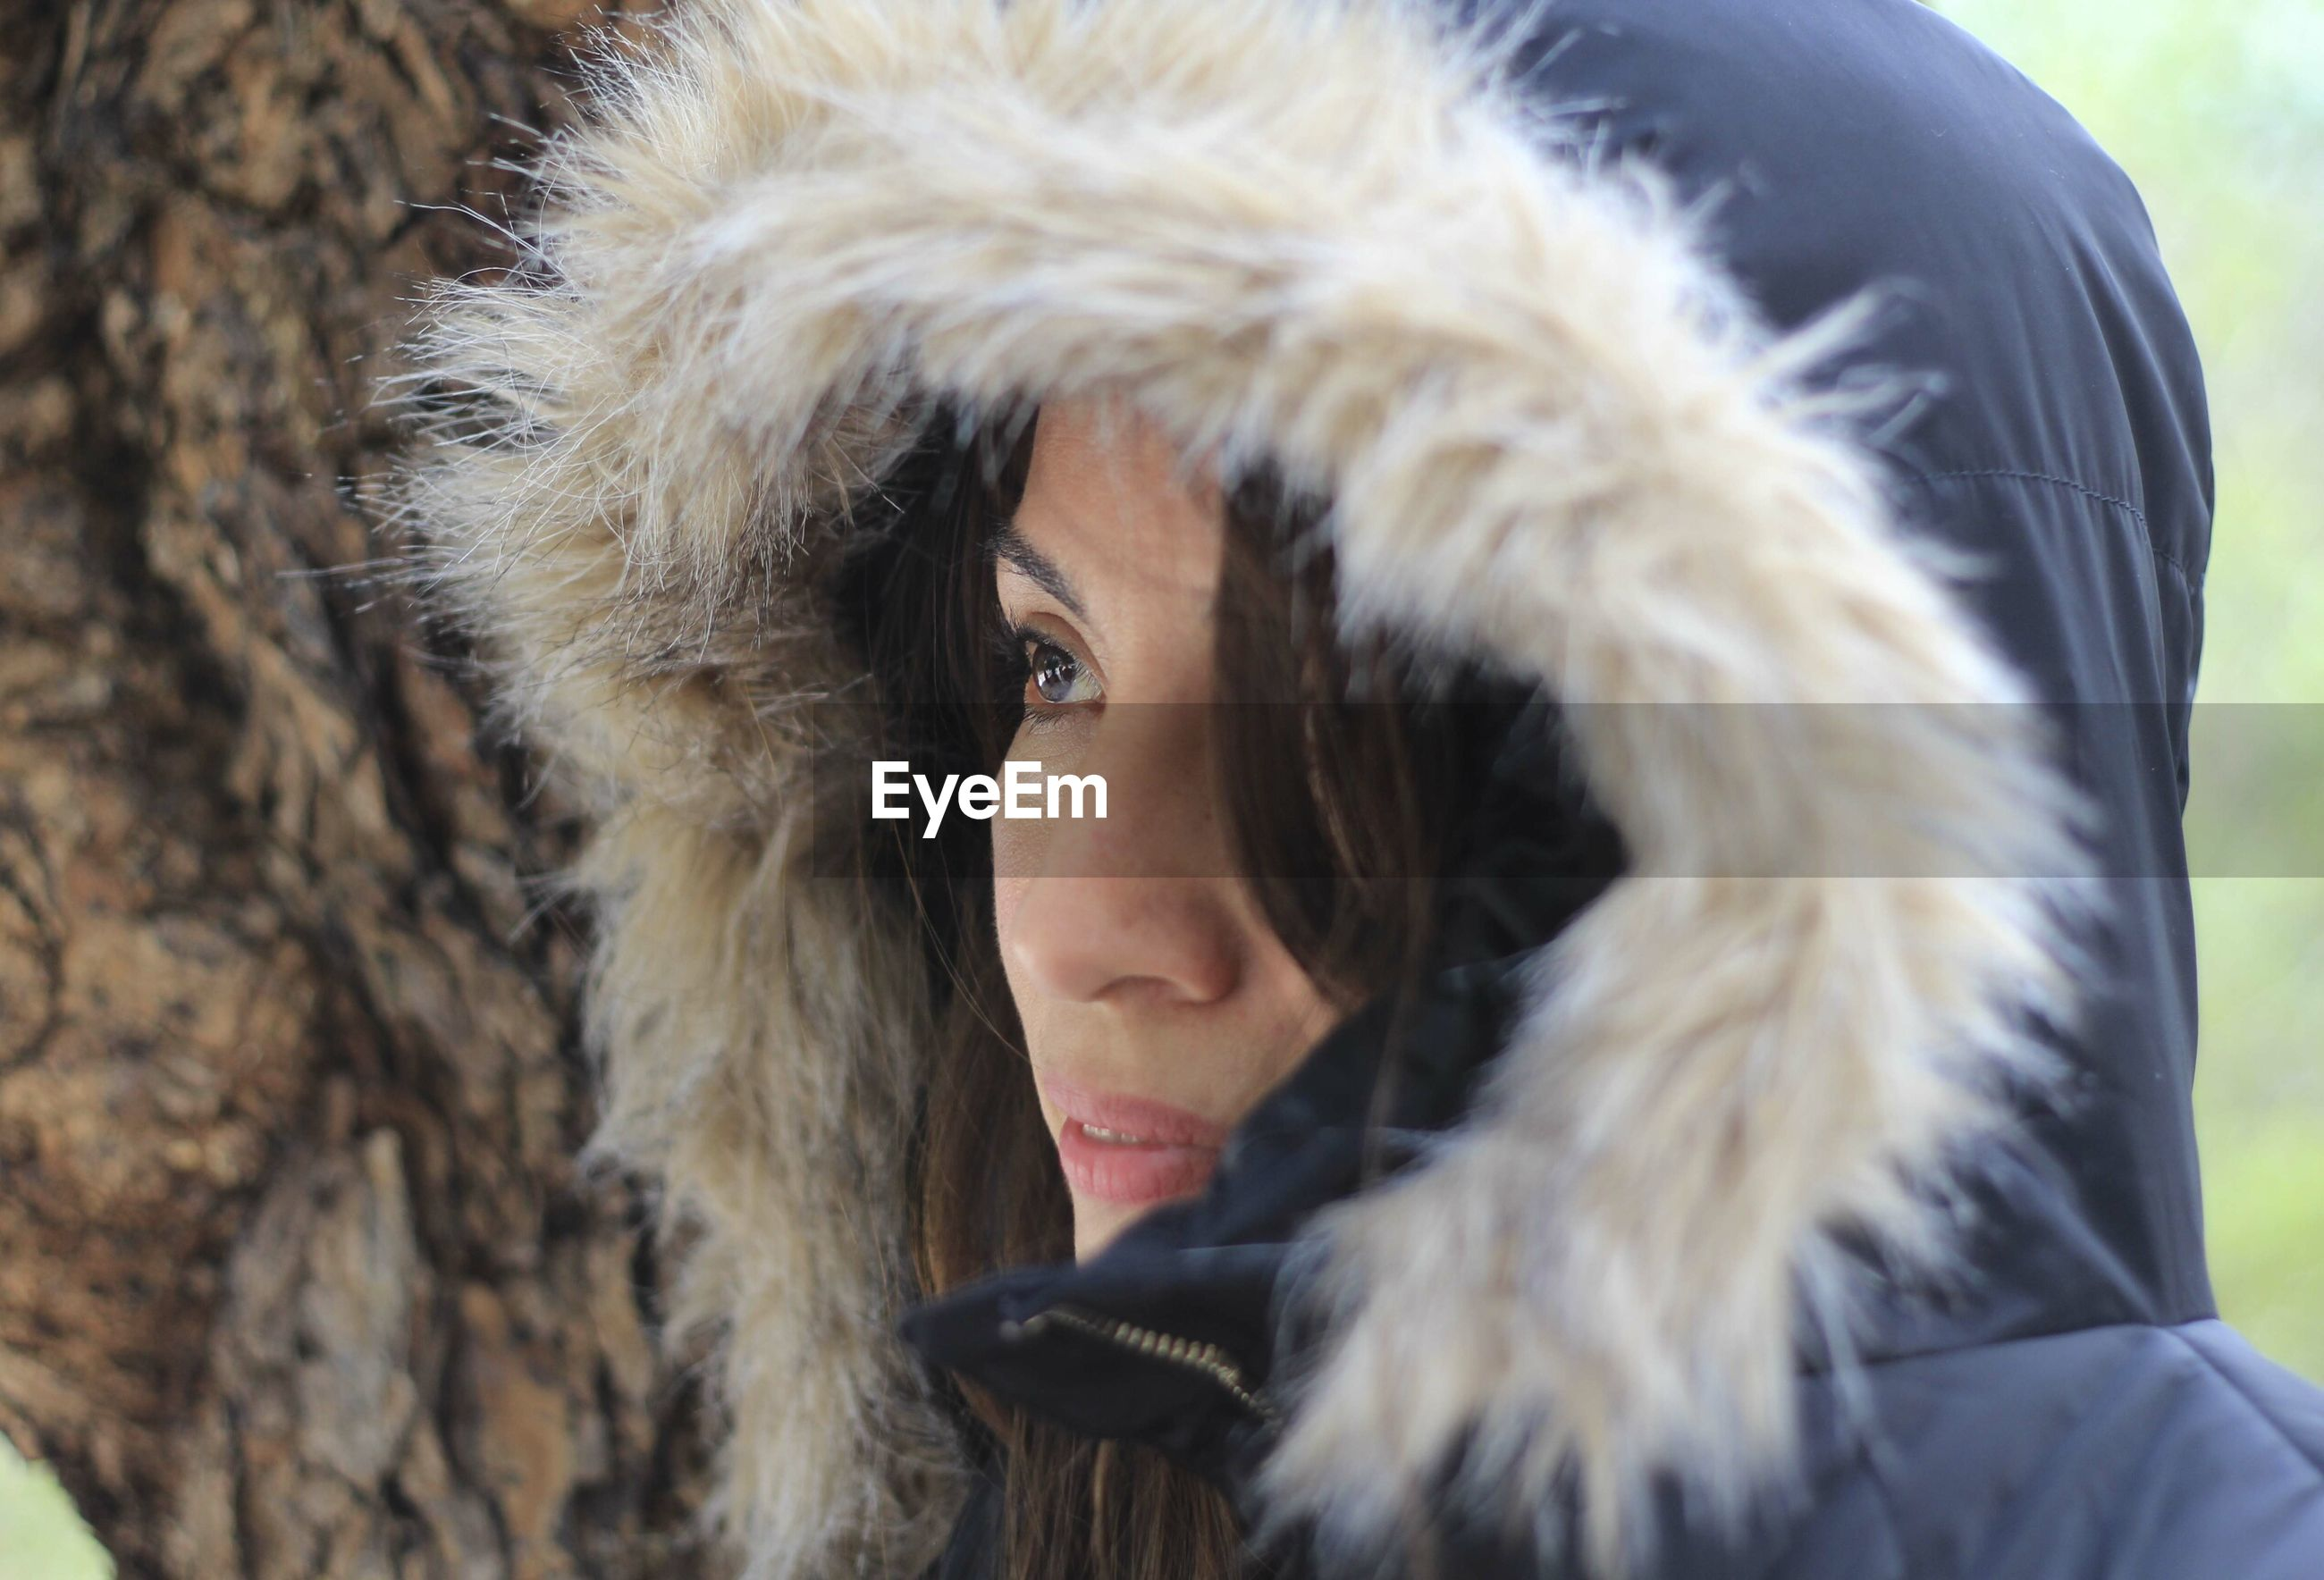 Close-up of thoughtful woman in fur coat by tree trunk